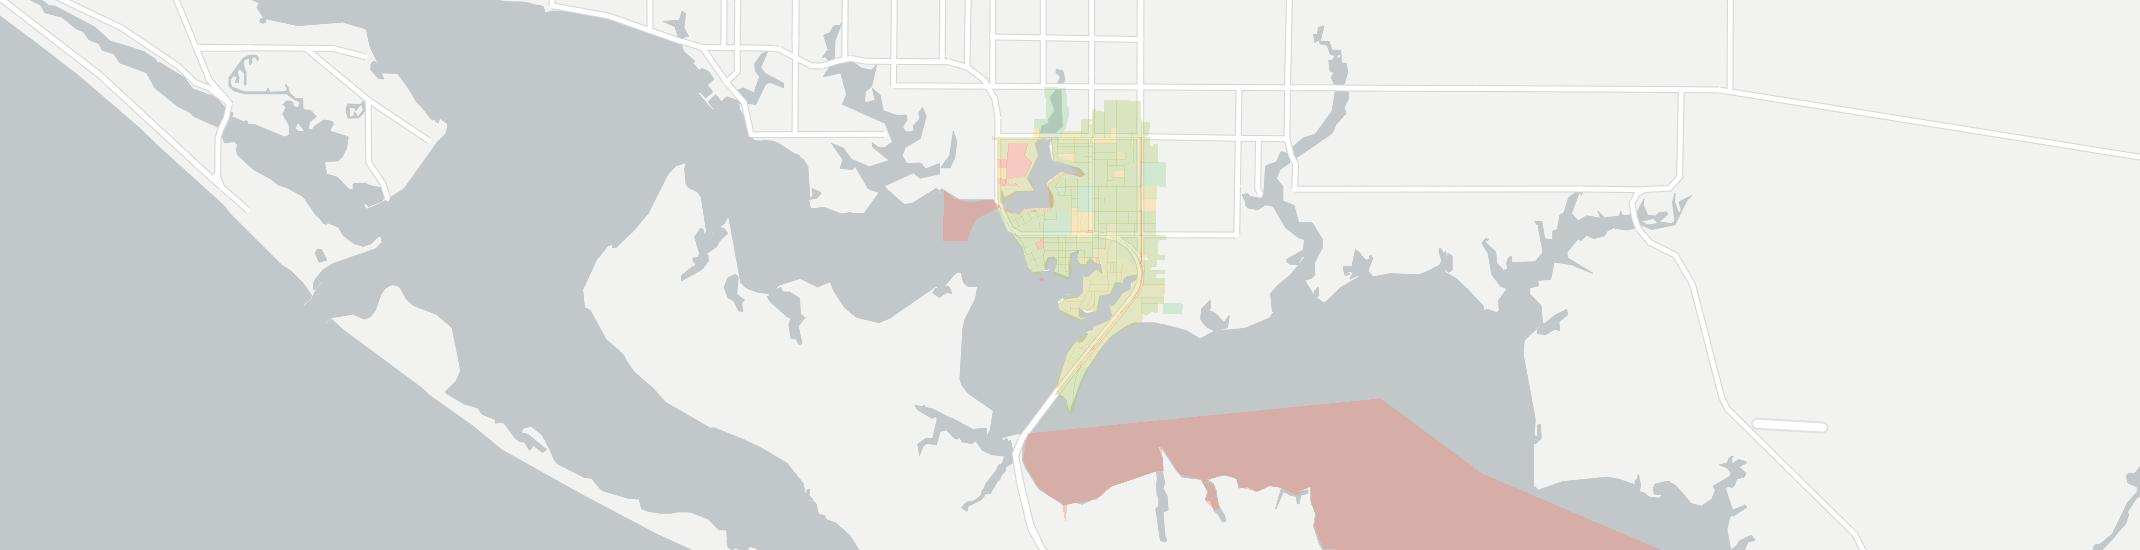 Parker Internet Competition Map. Click for interactive map.